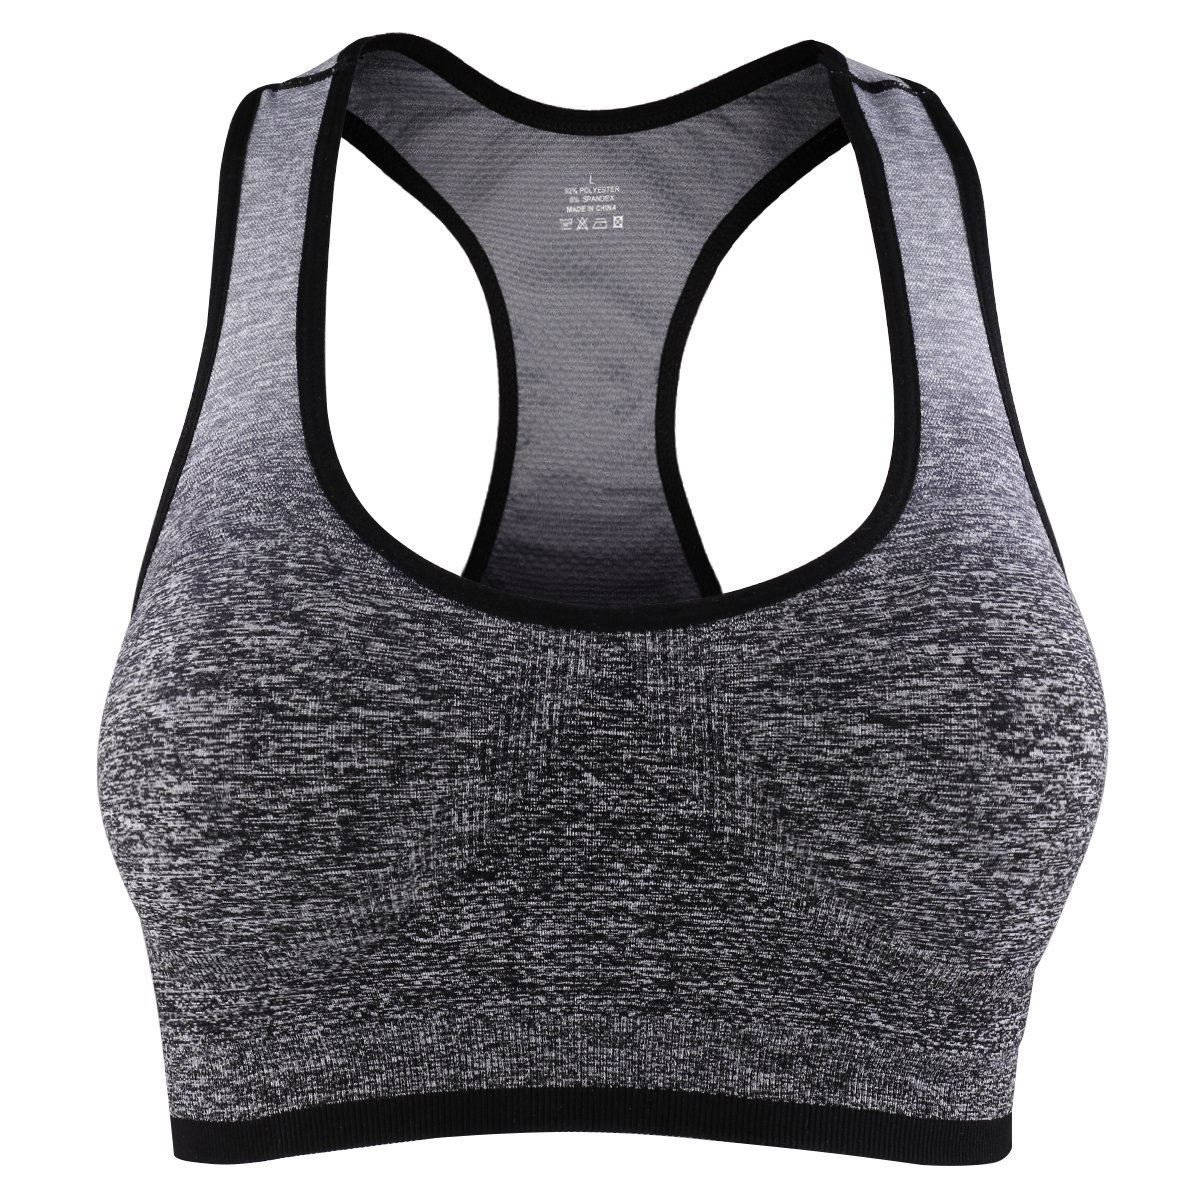 d3443f5c2ce45 Amazon.com  YAHA Women s Sports Bra High Impact Support Racerback Yoga  Workout Bra  Sports   Outdoors